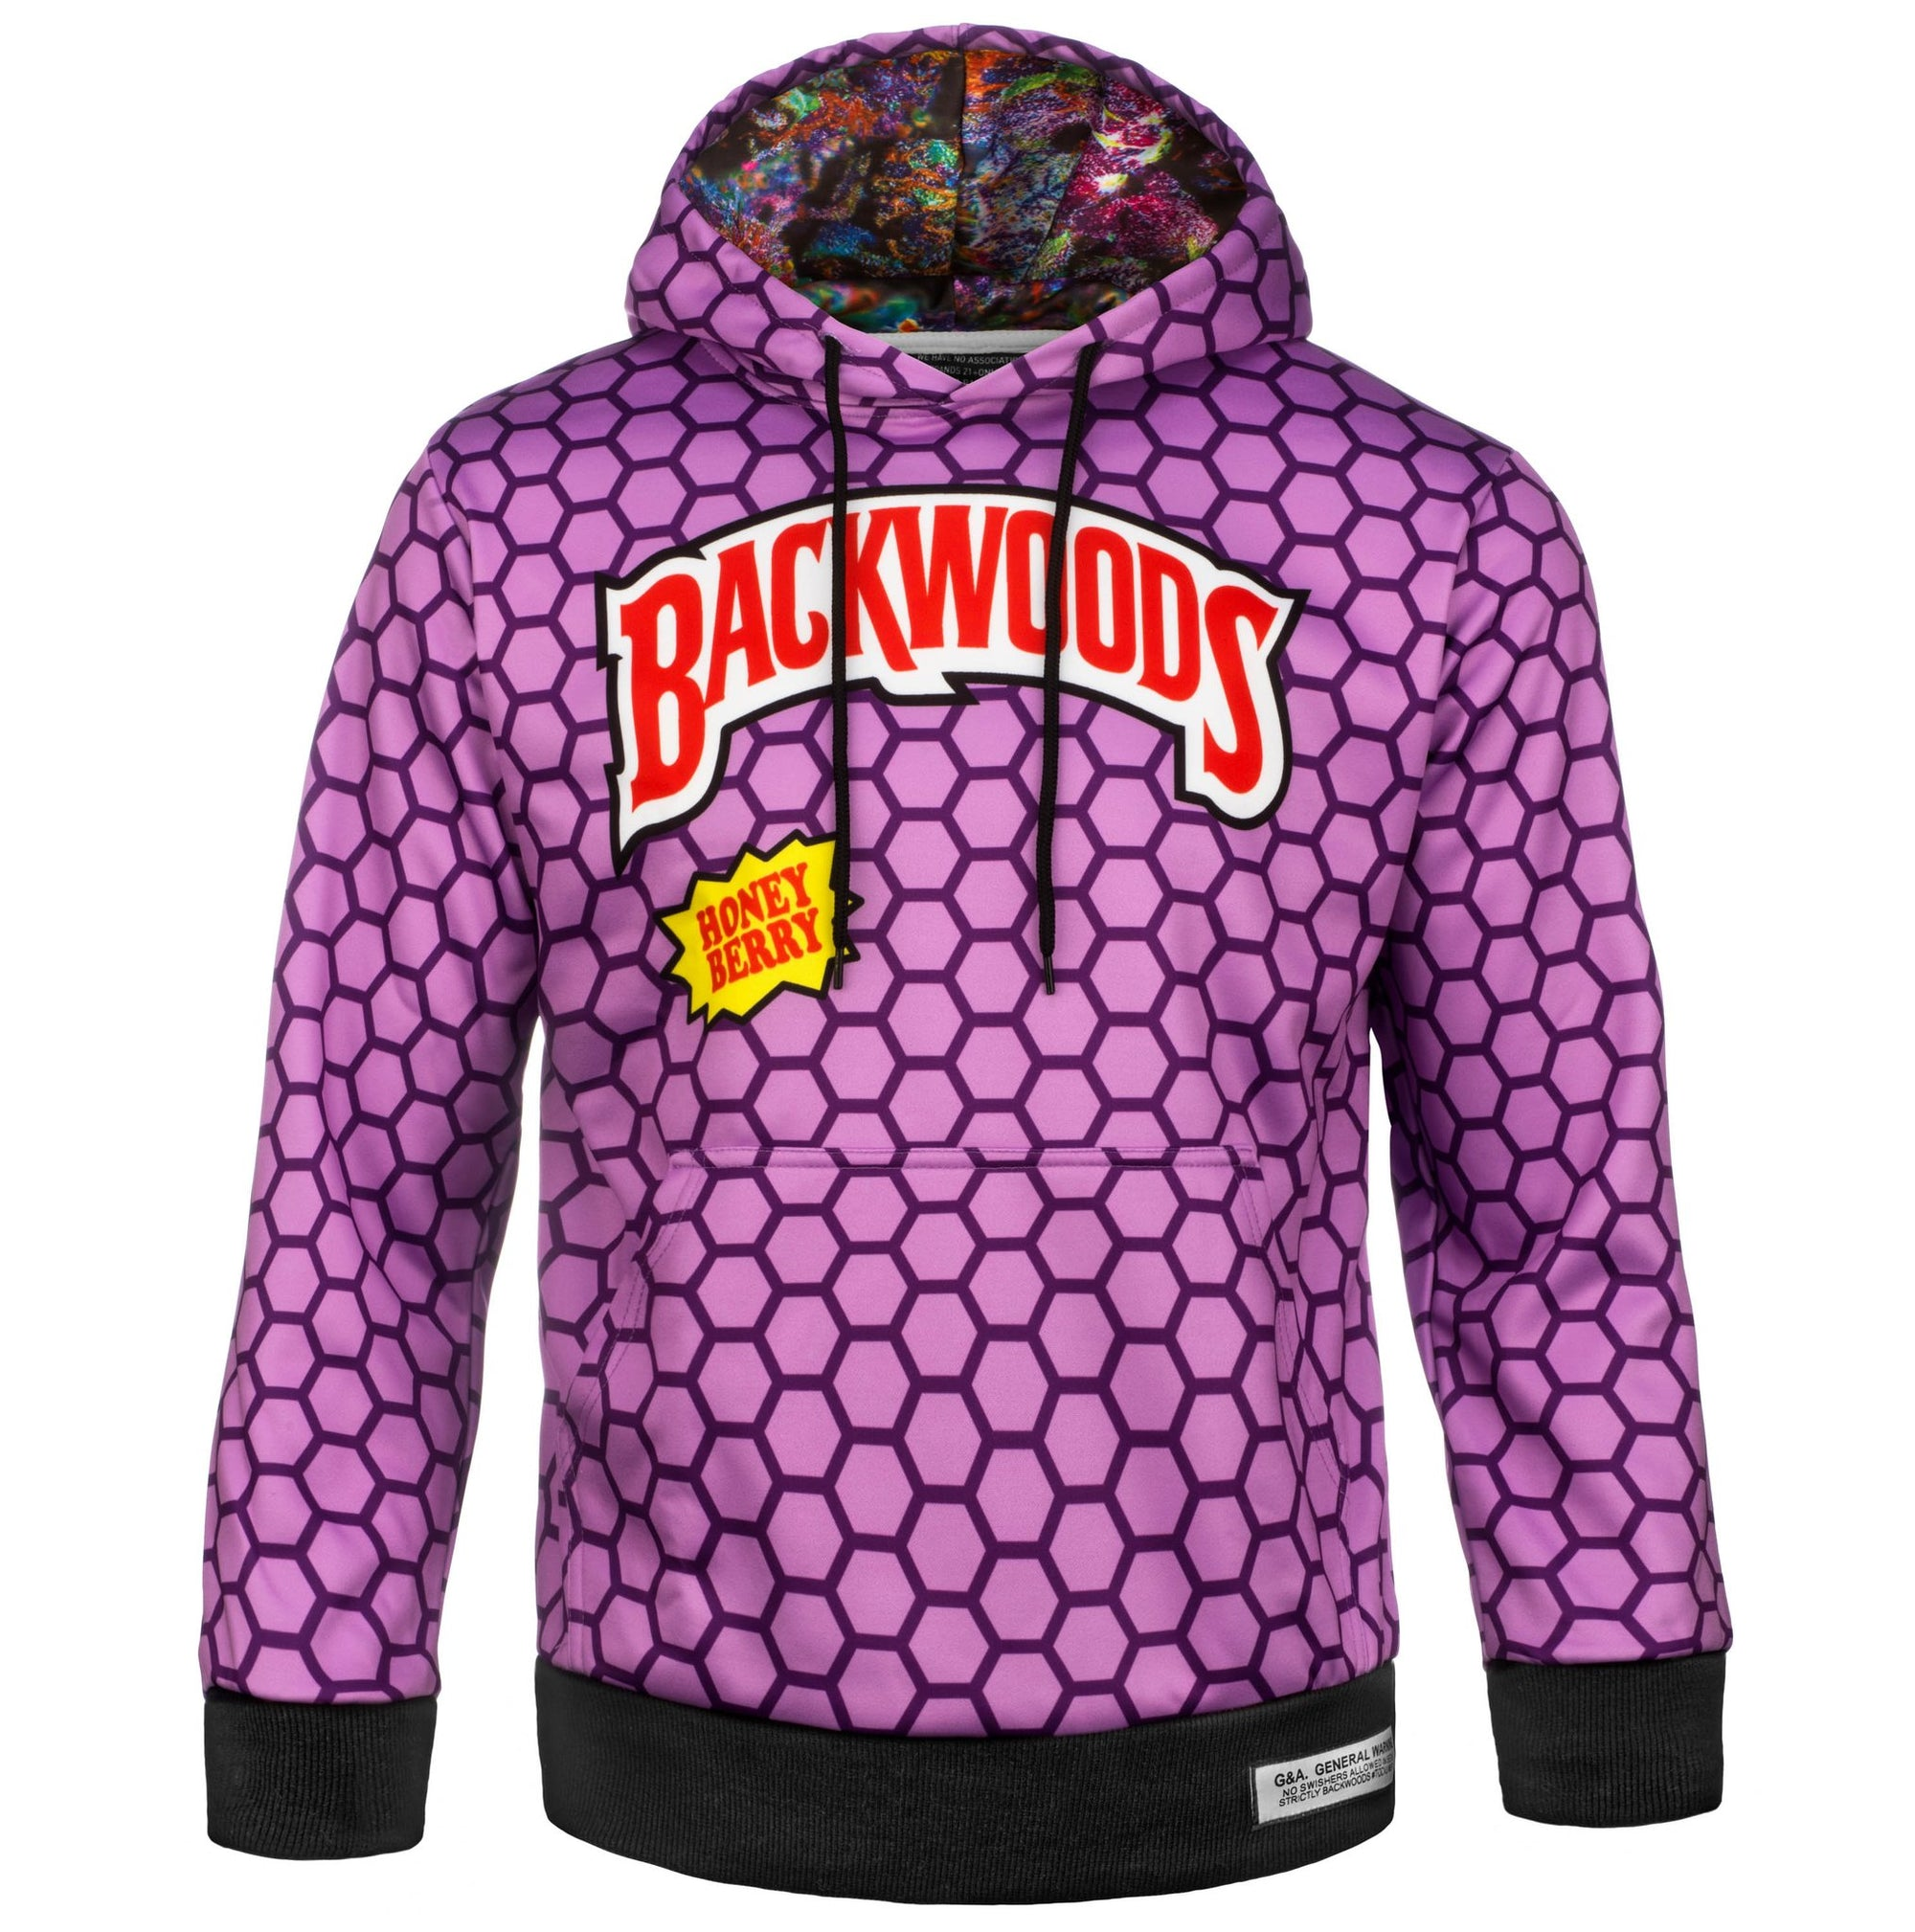 Honey Berry Backwoods Hoodie